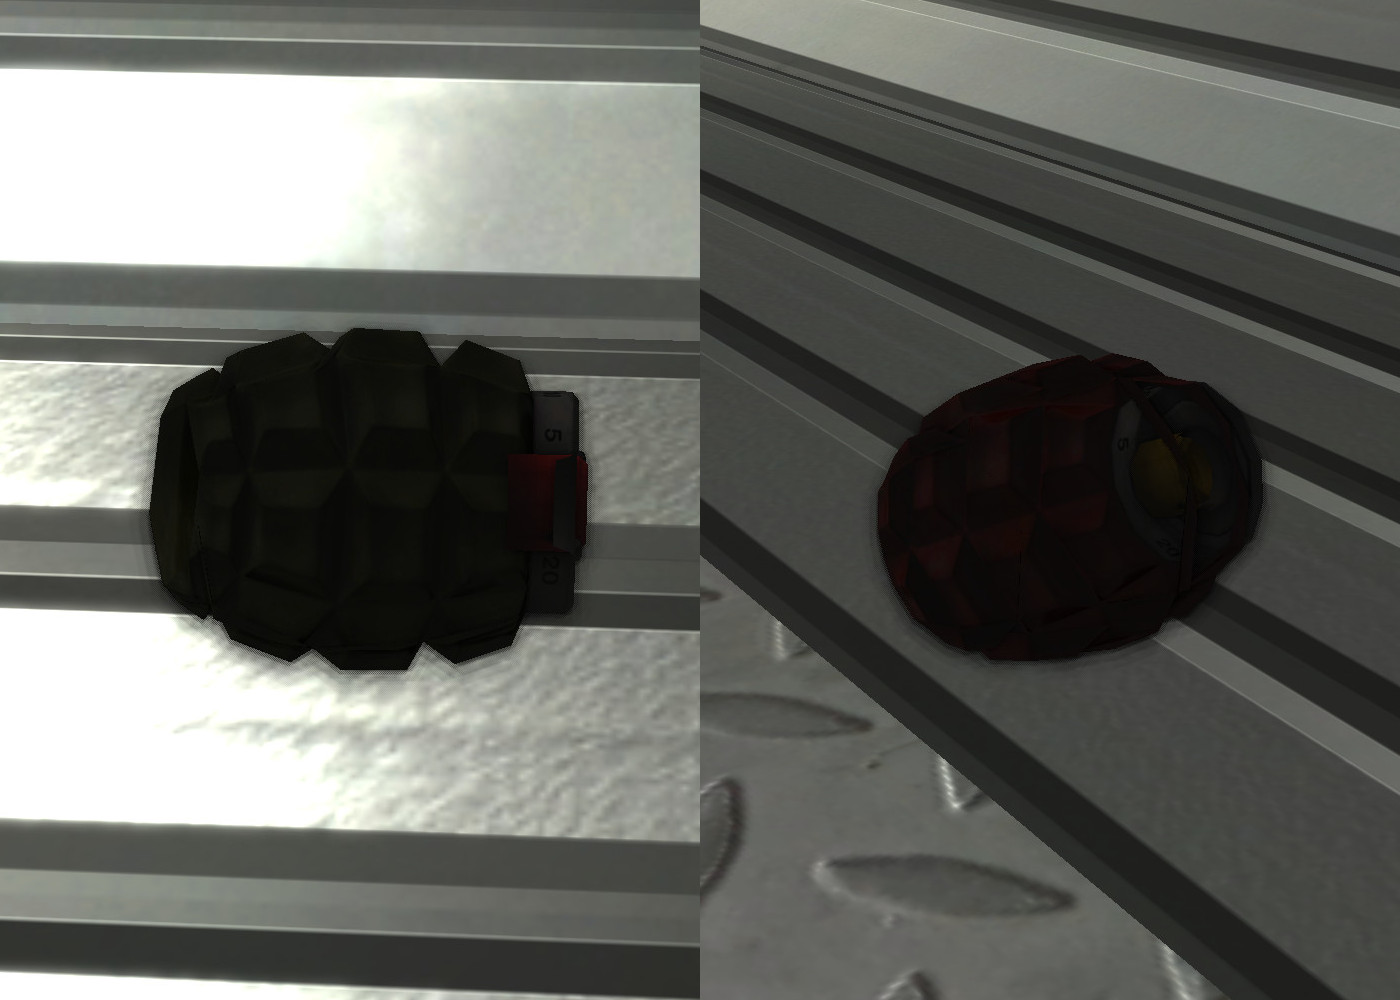 Chris' grenade and firebomb weapons